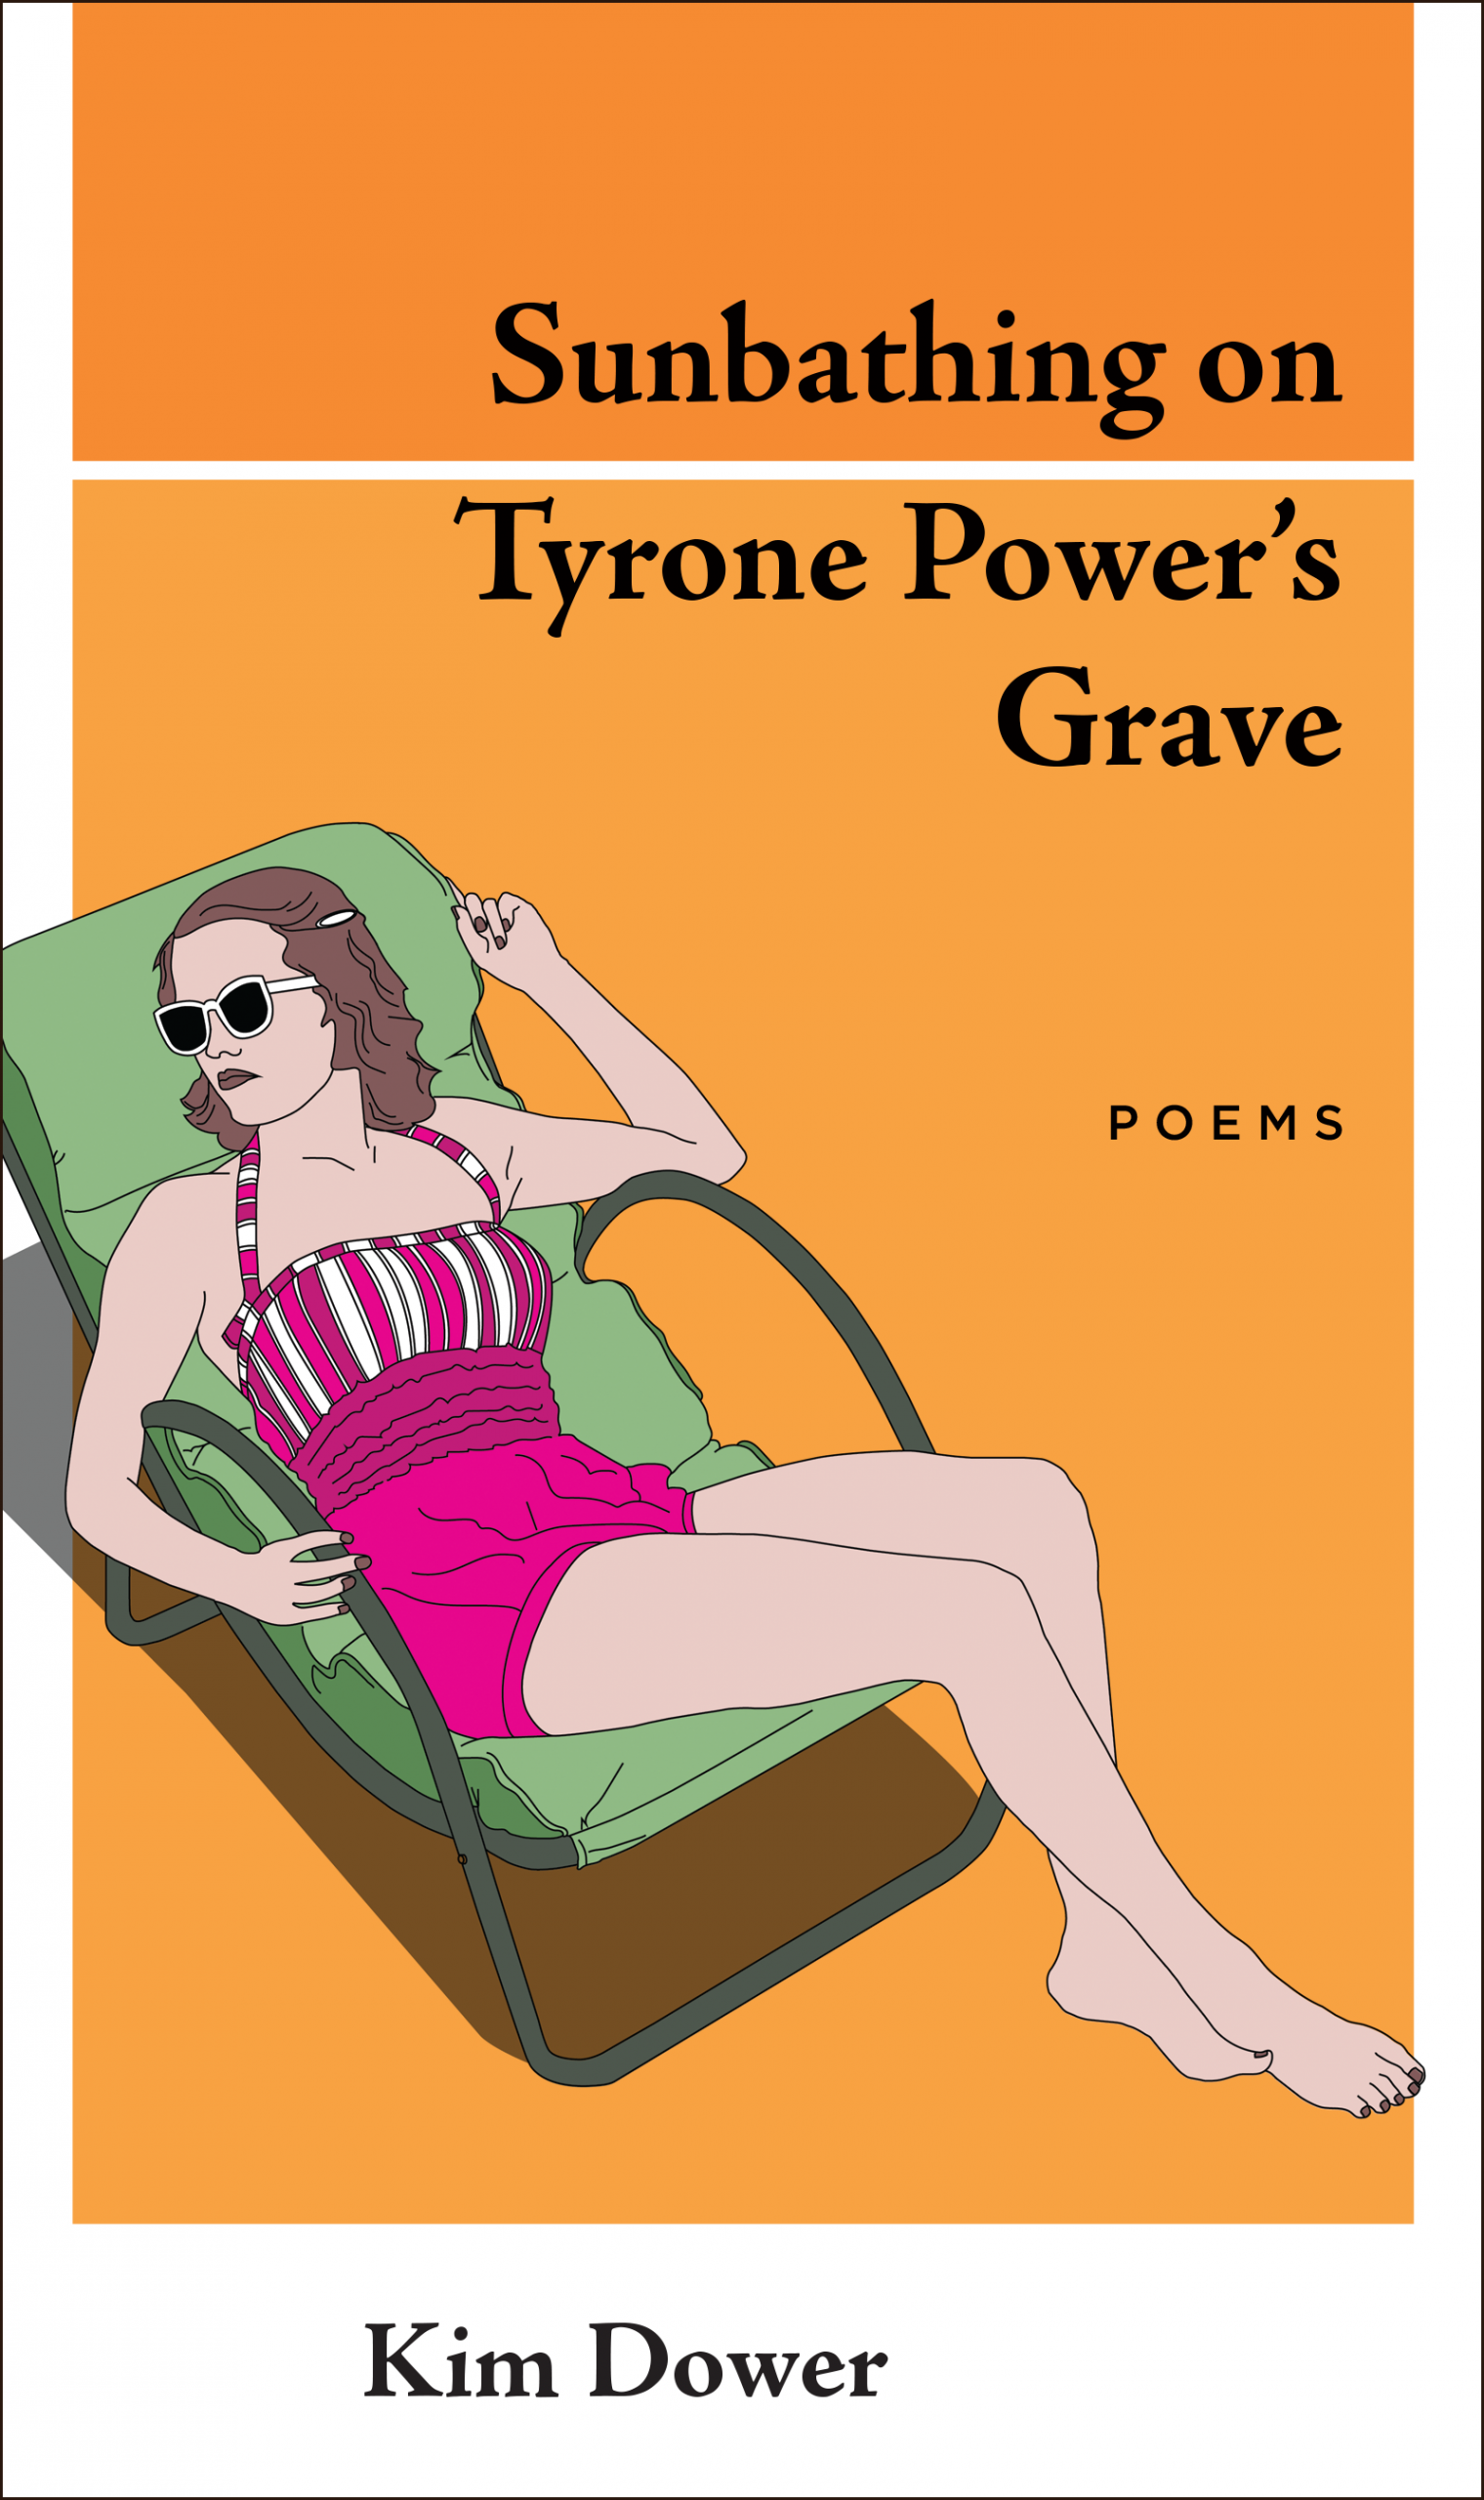 An orange background with a graphic design of a woman in a pink bathing suit sitting in a green lawn chair and black script that reads Sunbathing on Tyrone Power's Grave poems by Kim Dower.